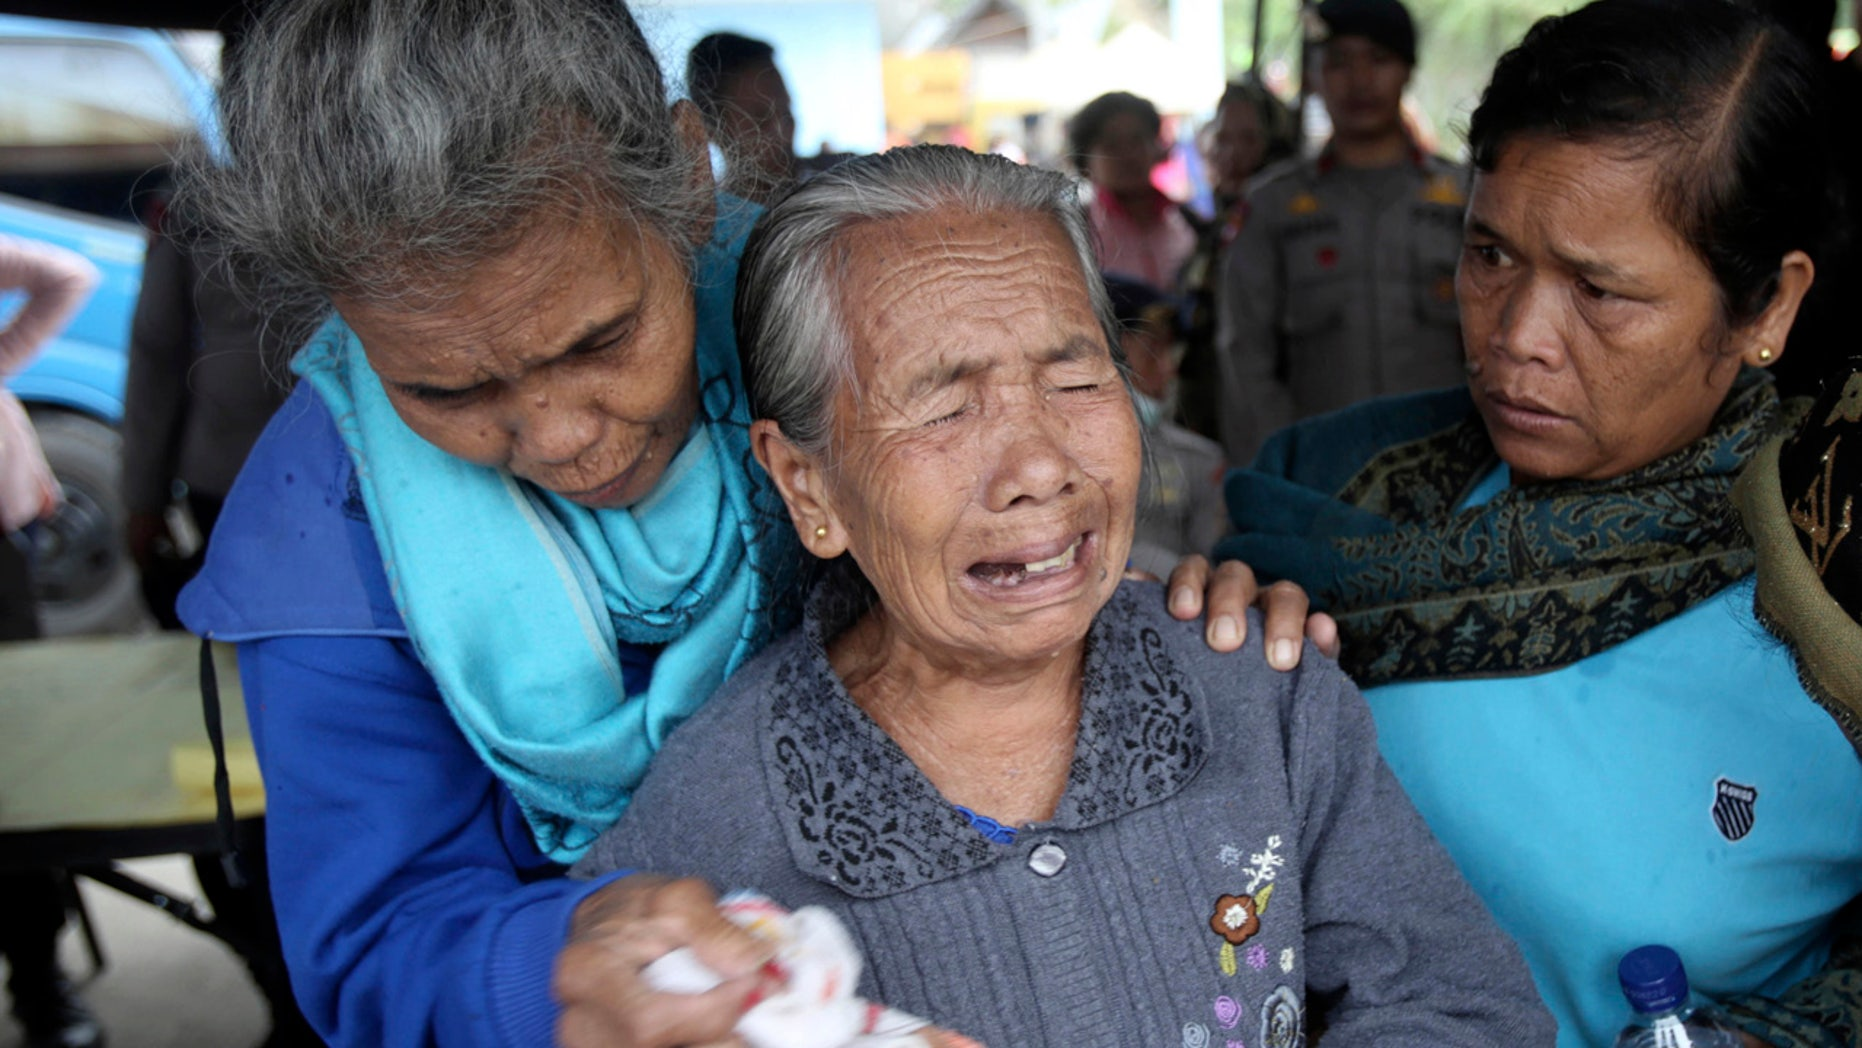 Relatives of victims of a sunken ferry weep as they wait for news at Tigaras port in Lake Toba, North Sumatra, Indonesia.